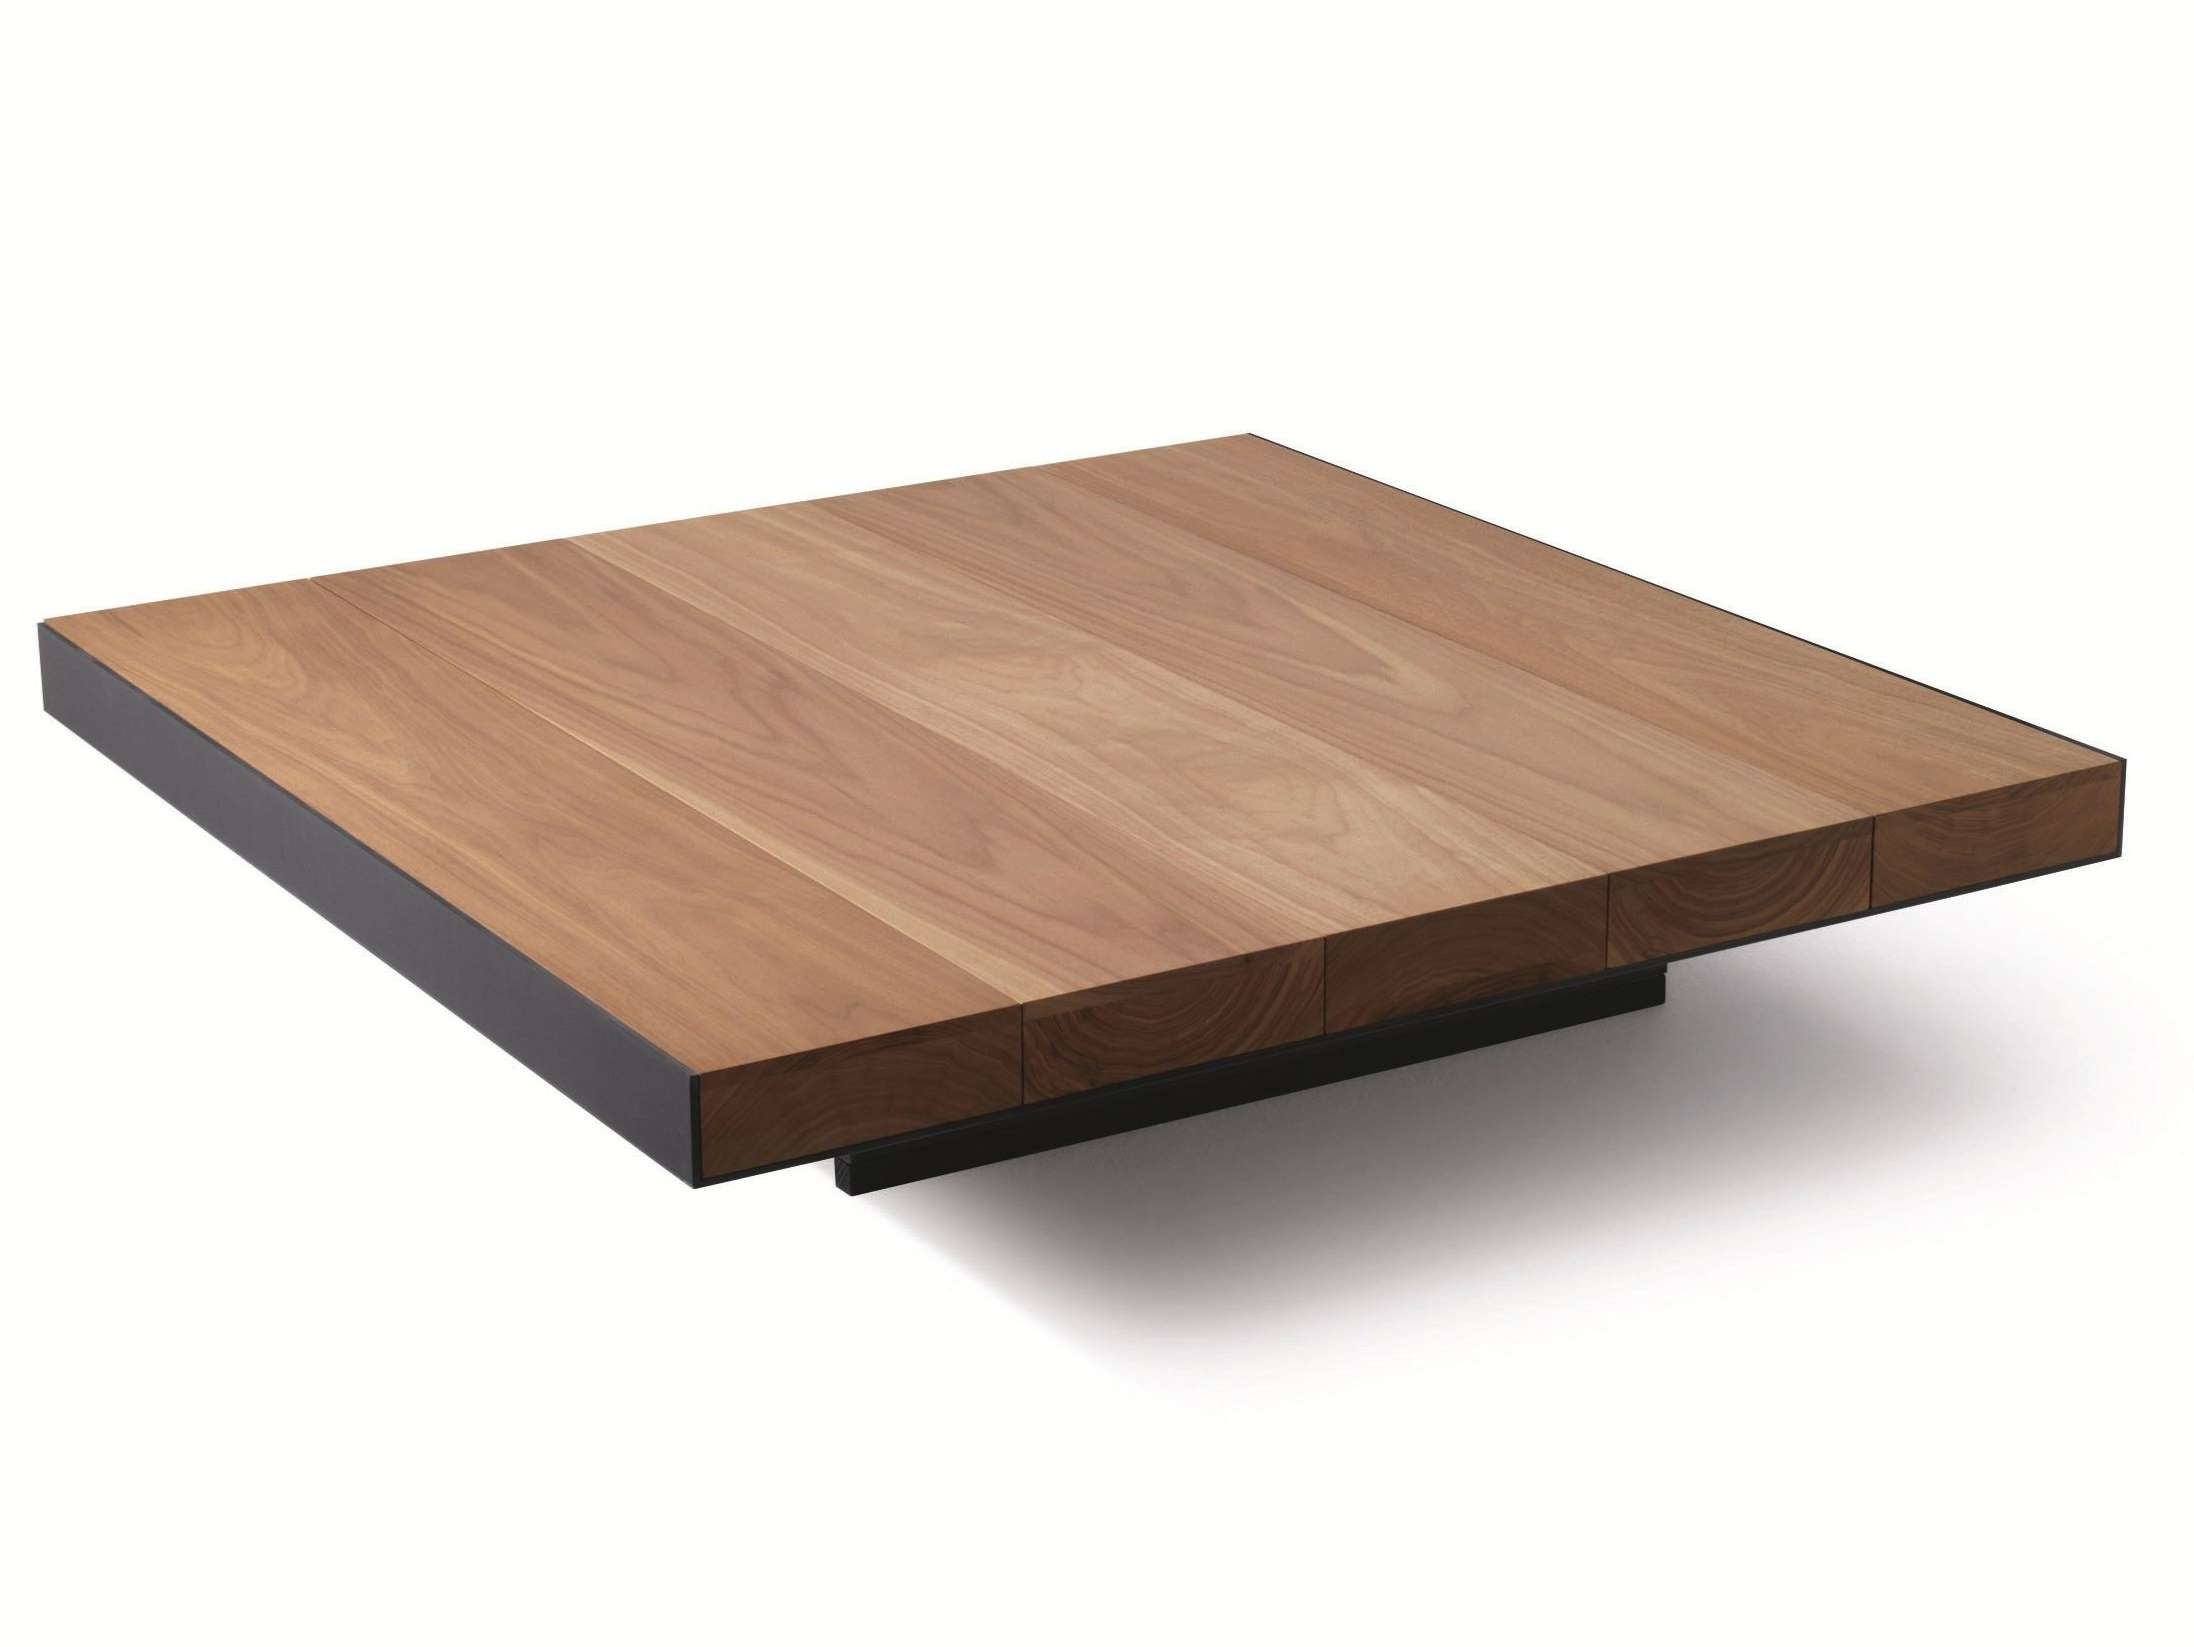 Coffee Tables : Small Low Coffee Table Design Ideas Oak Round Side Regarding Trendy Low Coffee Tables With Drawers (View 8 of 20)